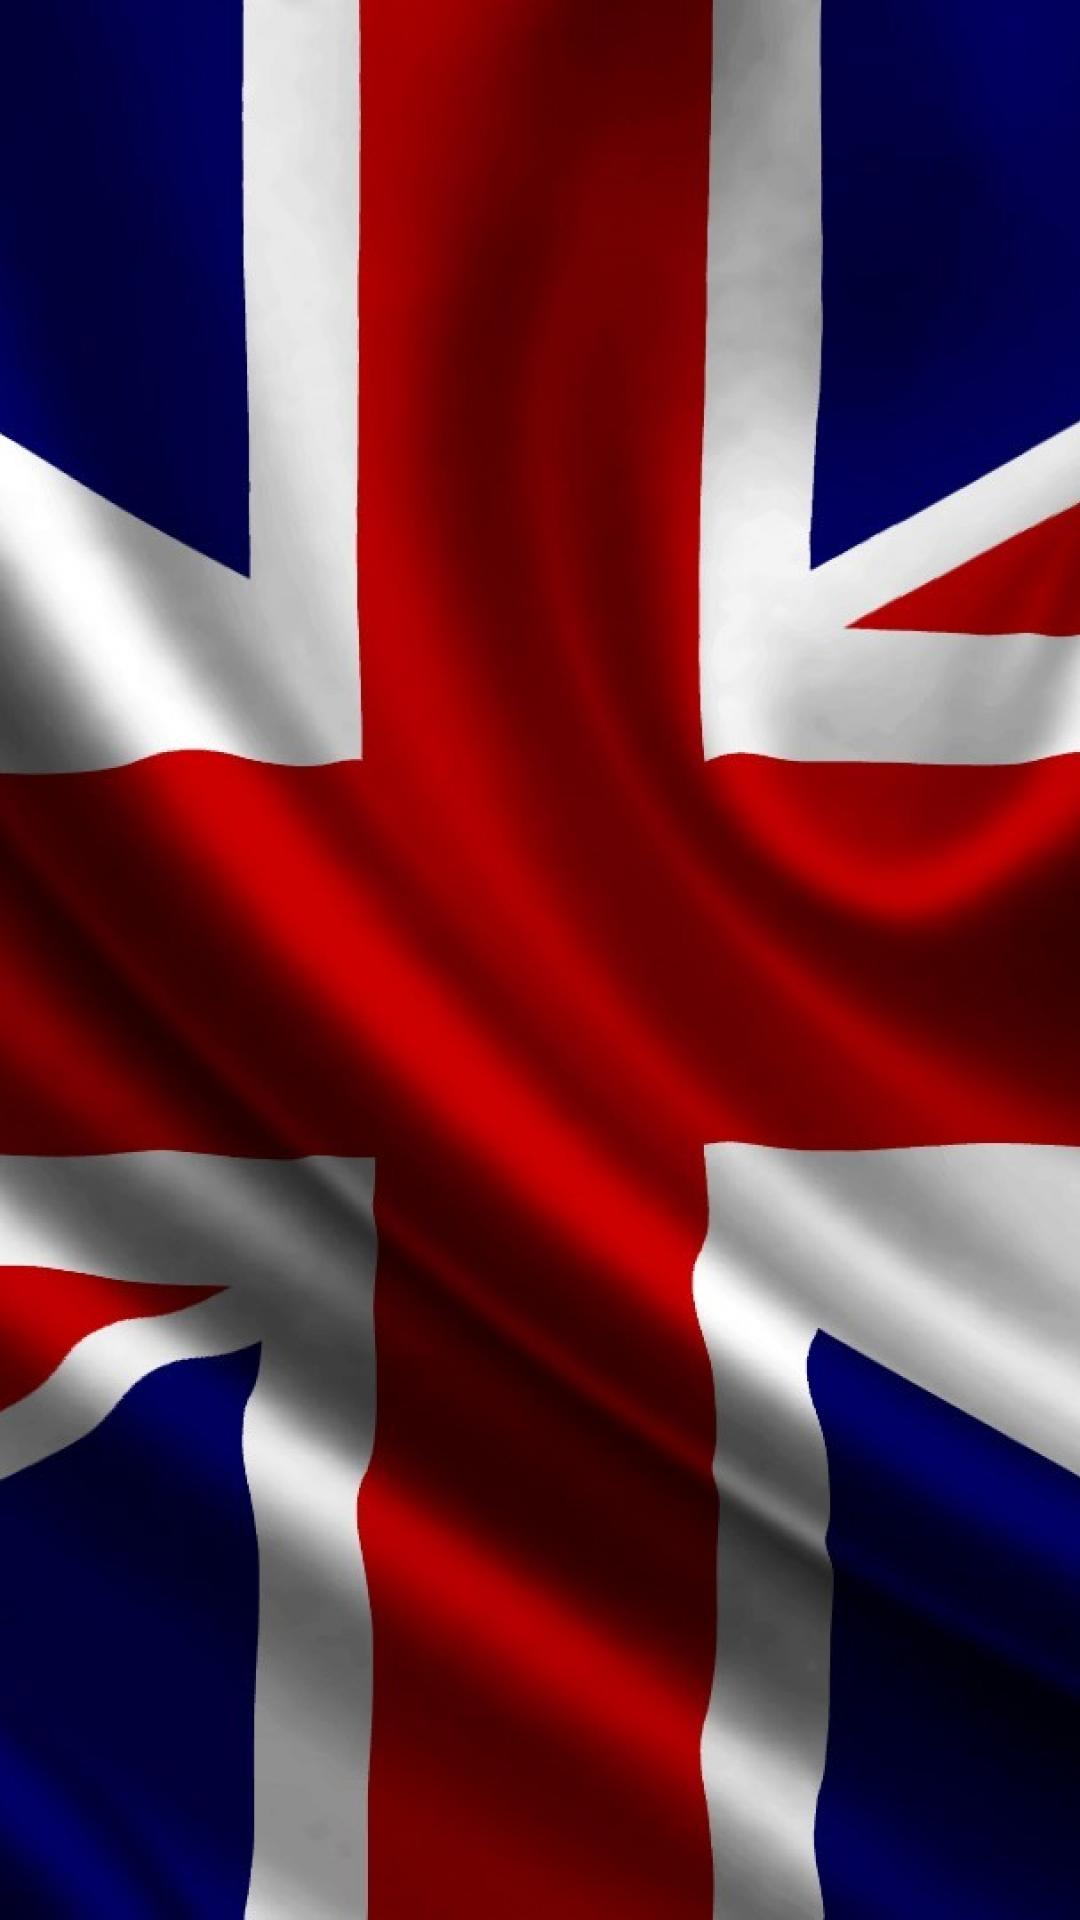 Union Jack Wallpaper Union Jack Flag Iphone 886400 Hd